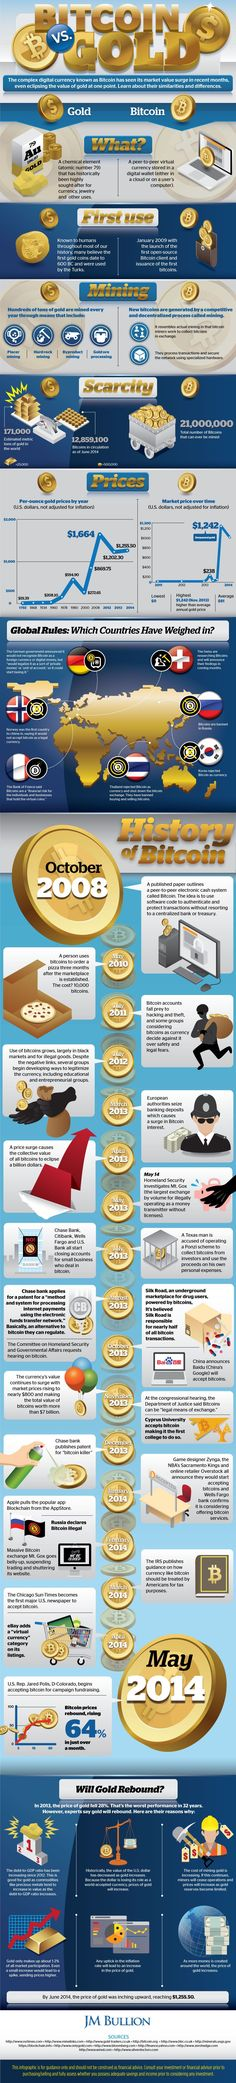 What is Bitcoin?   Daily Infographic   Data Visualization, Information Design and Infographics